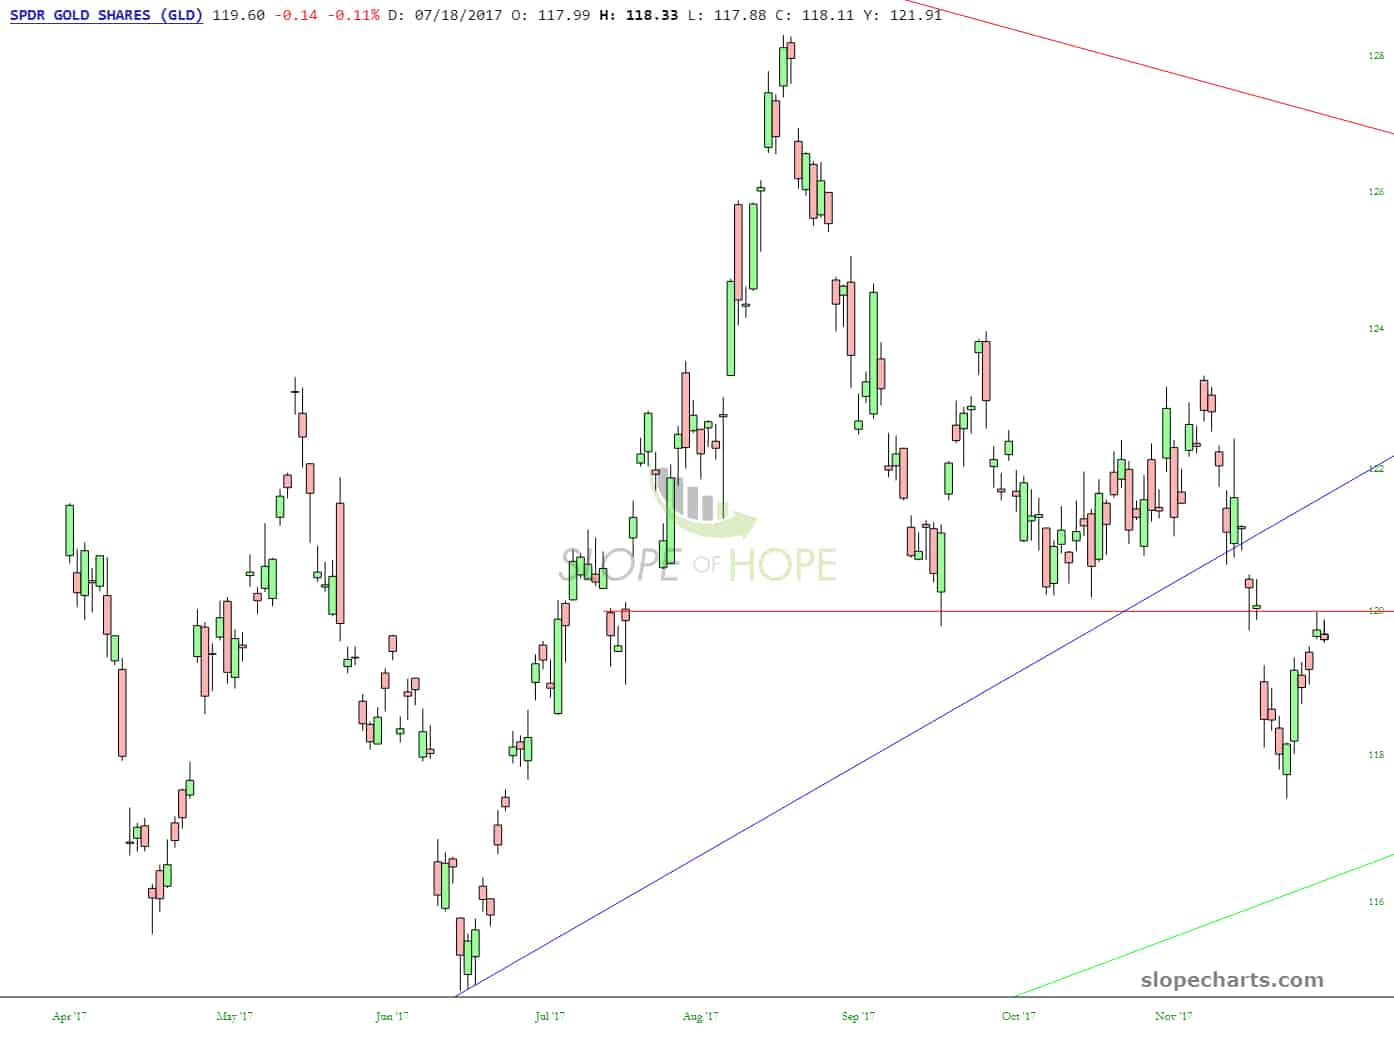 slopechart_GLD